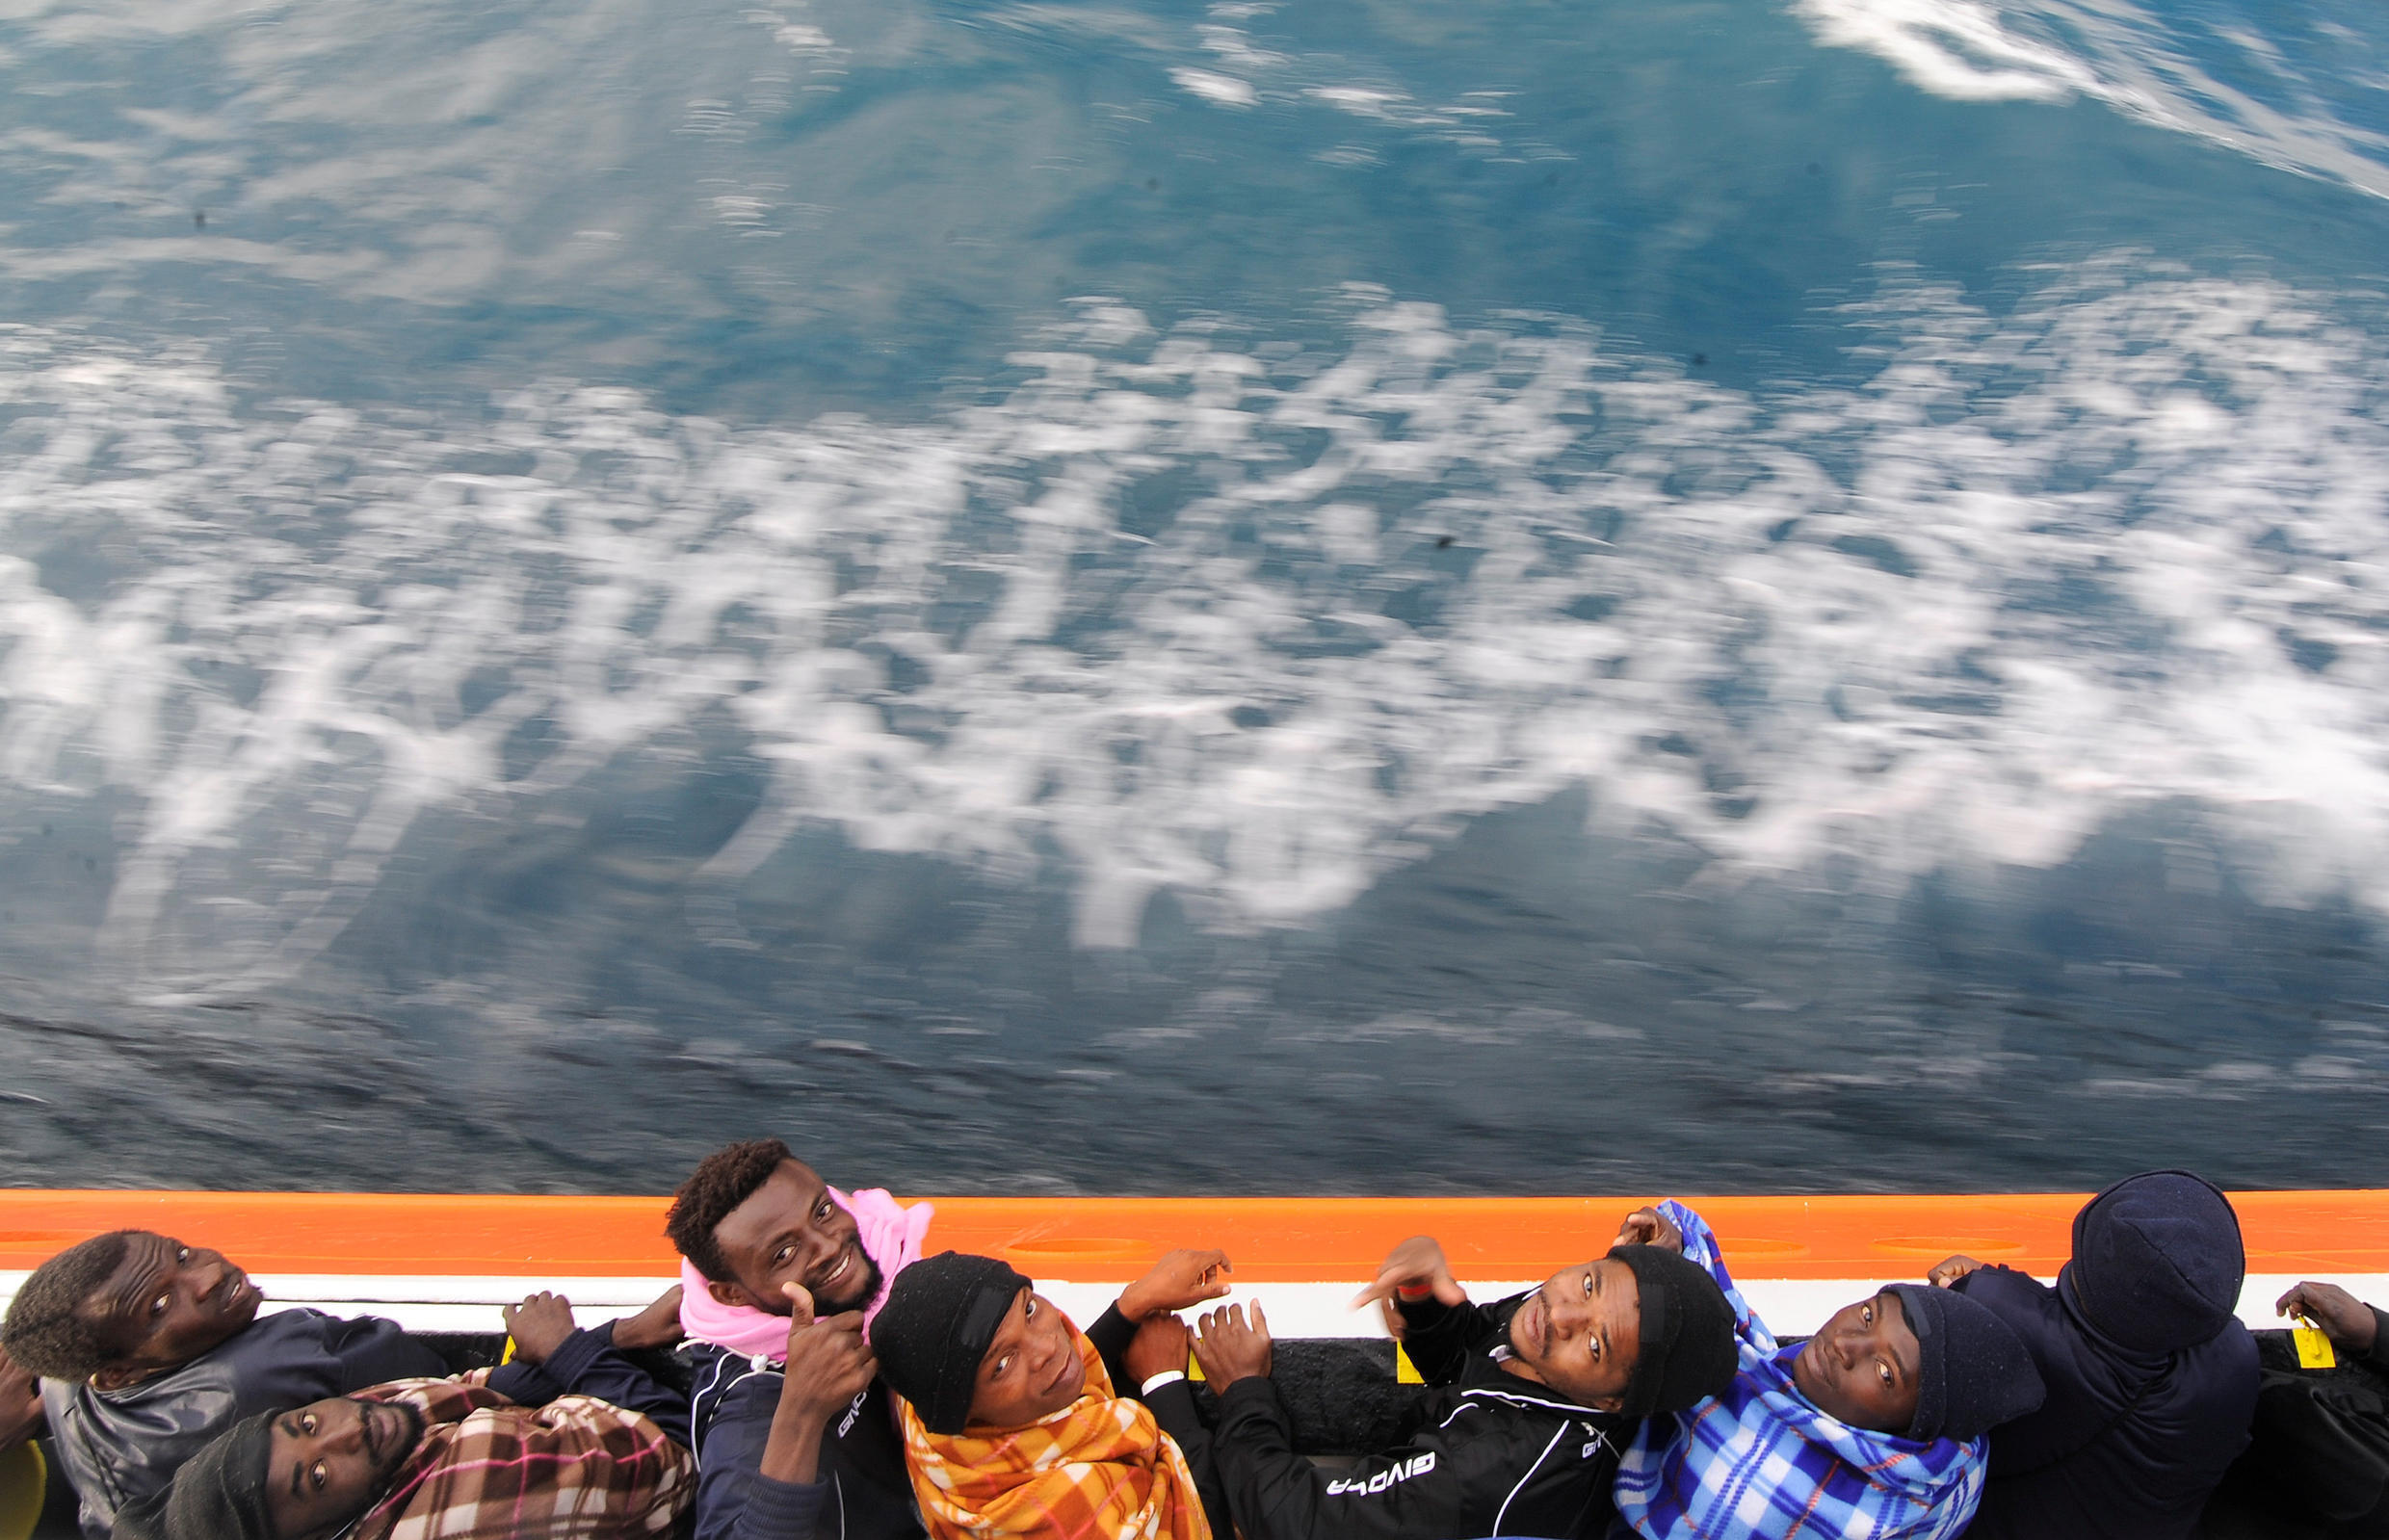 Refugees on board the Aquarius